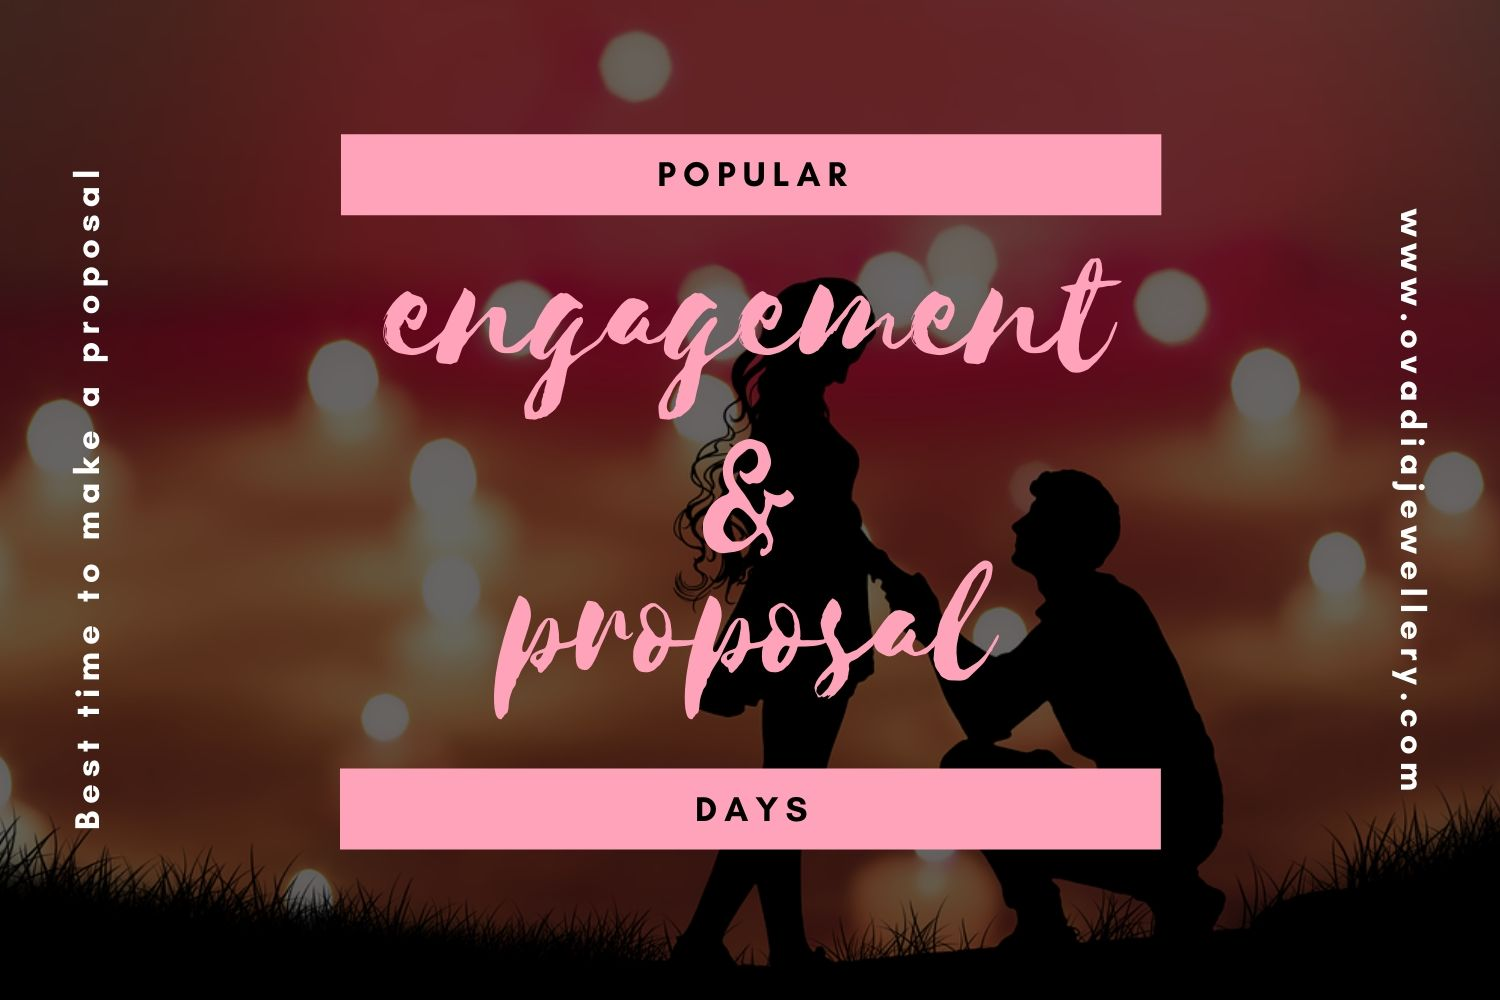 popular engagement and proposalpopular engagement and proposal days days